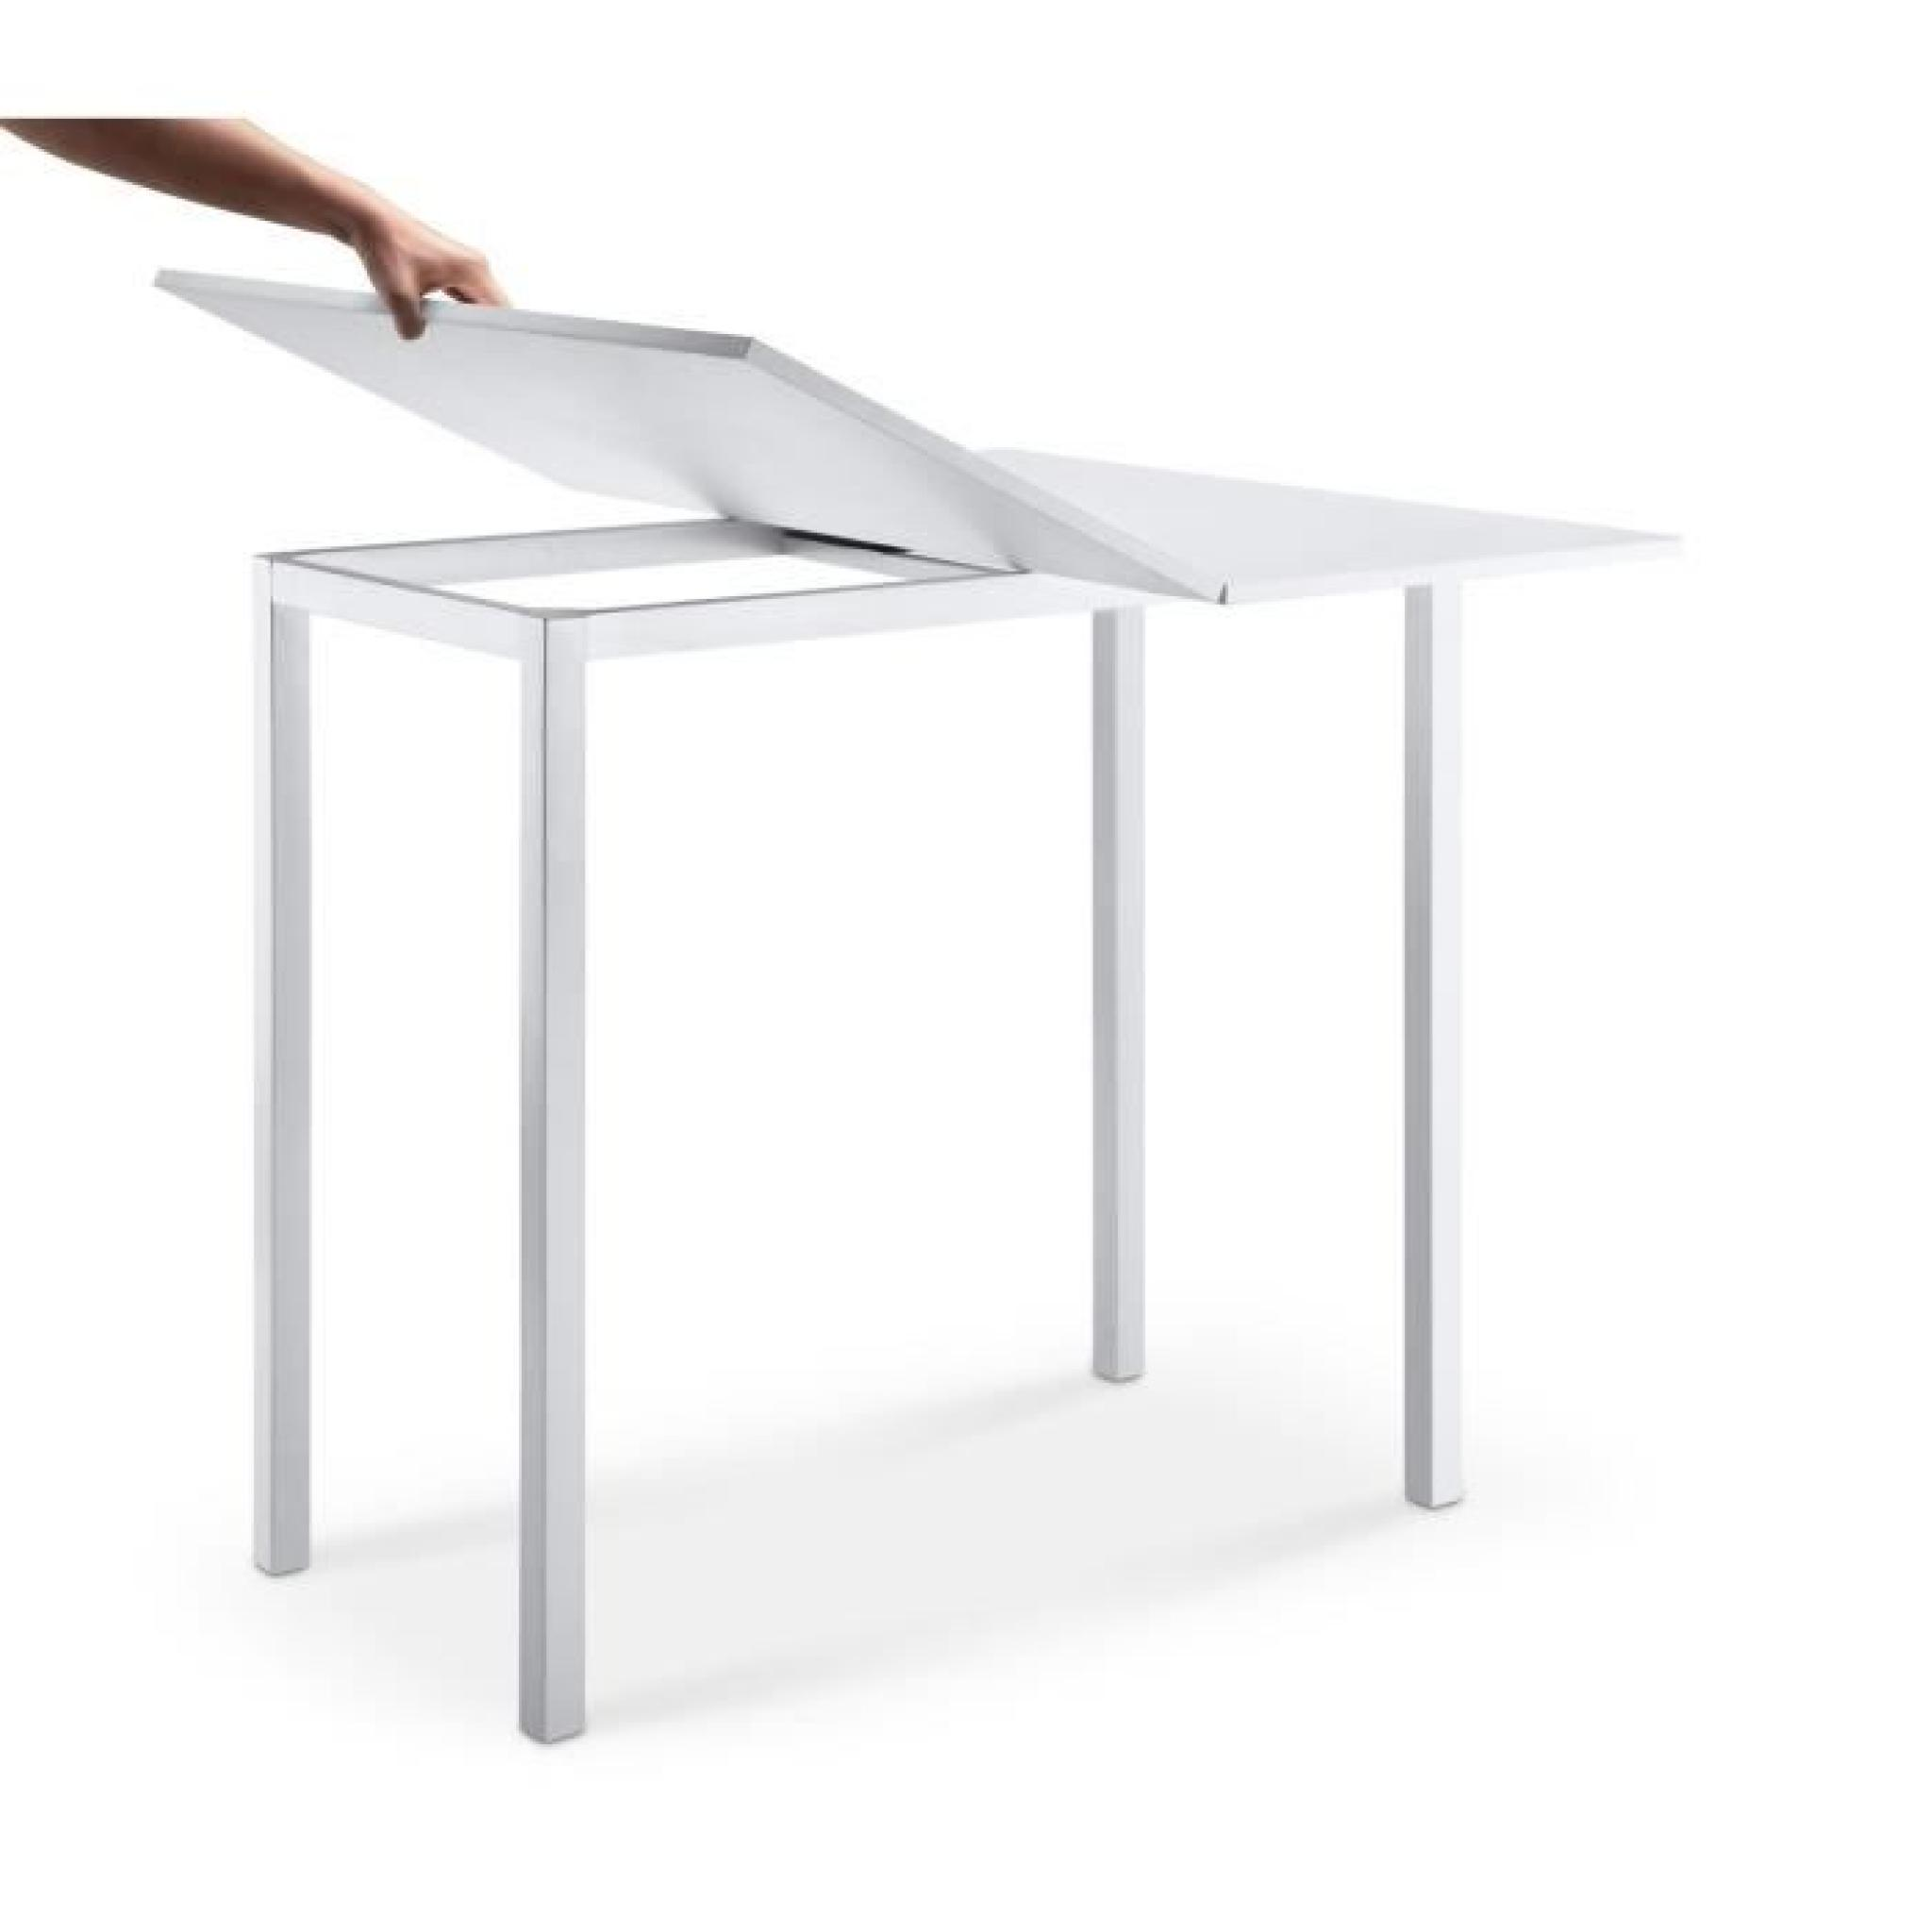 Table ovale extensible blanc table ovale extensible blanc for Table ovale extensible pas cher